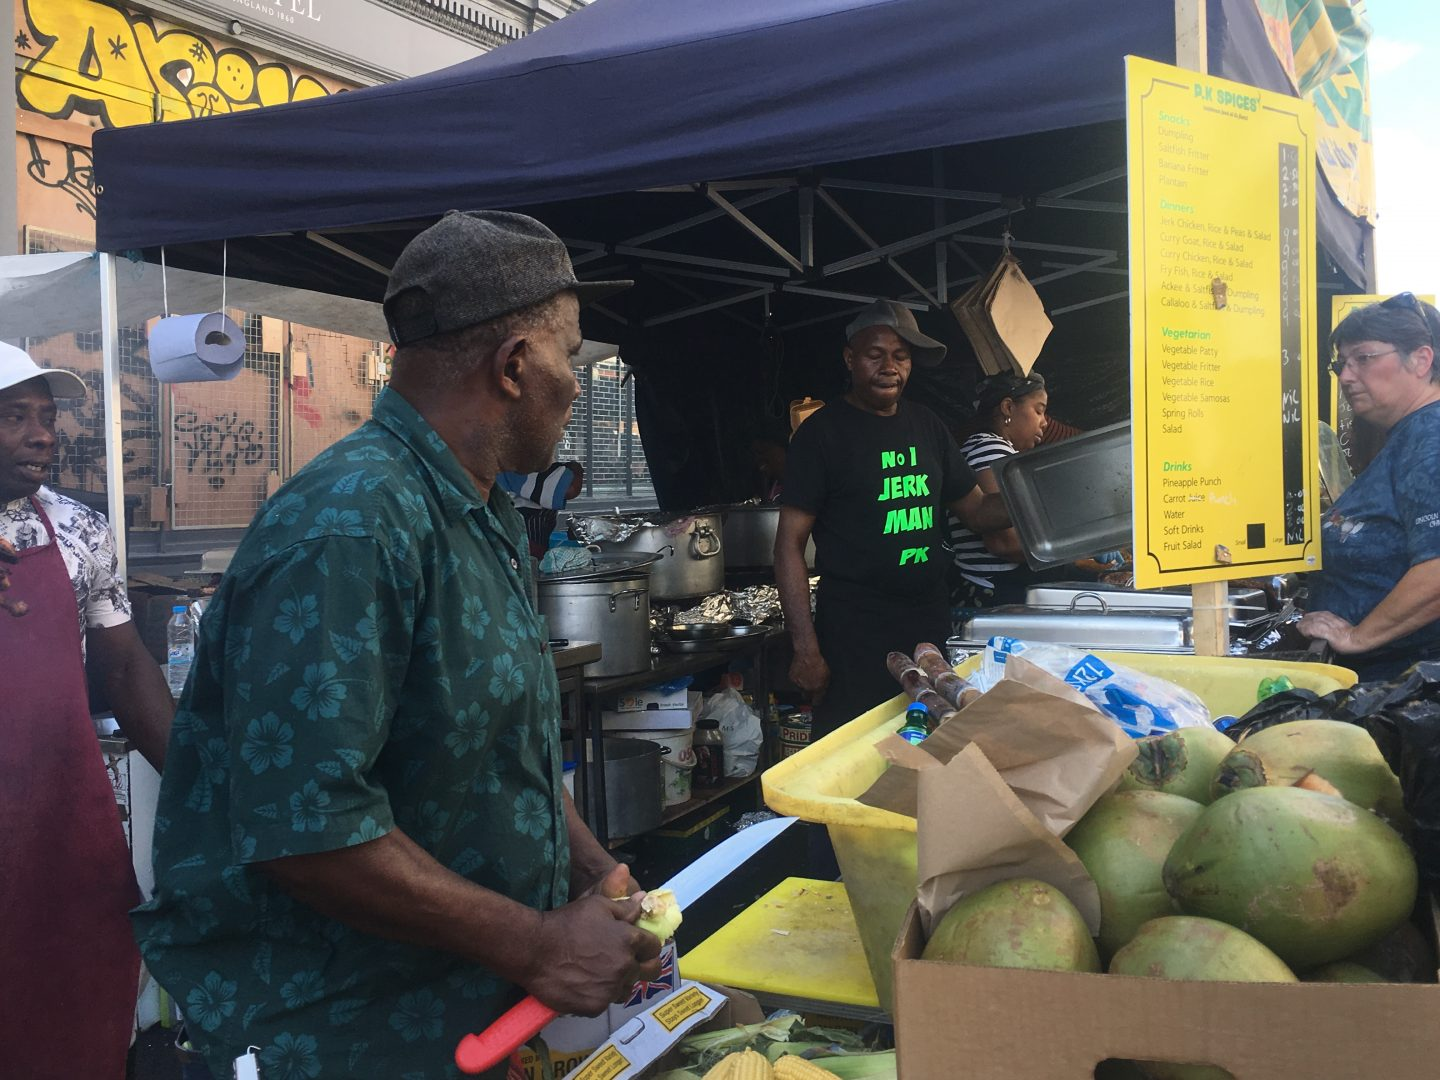 Street eats at Notting Hill Carnival, London